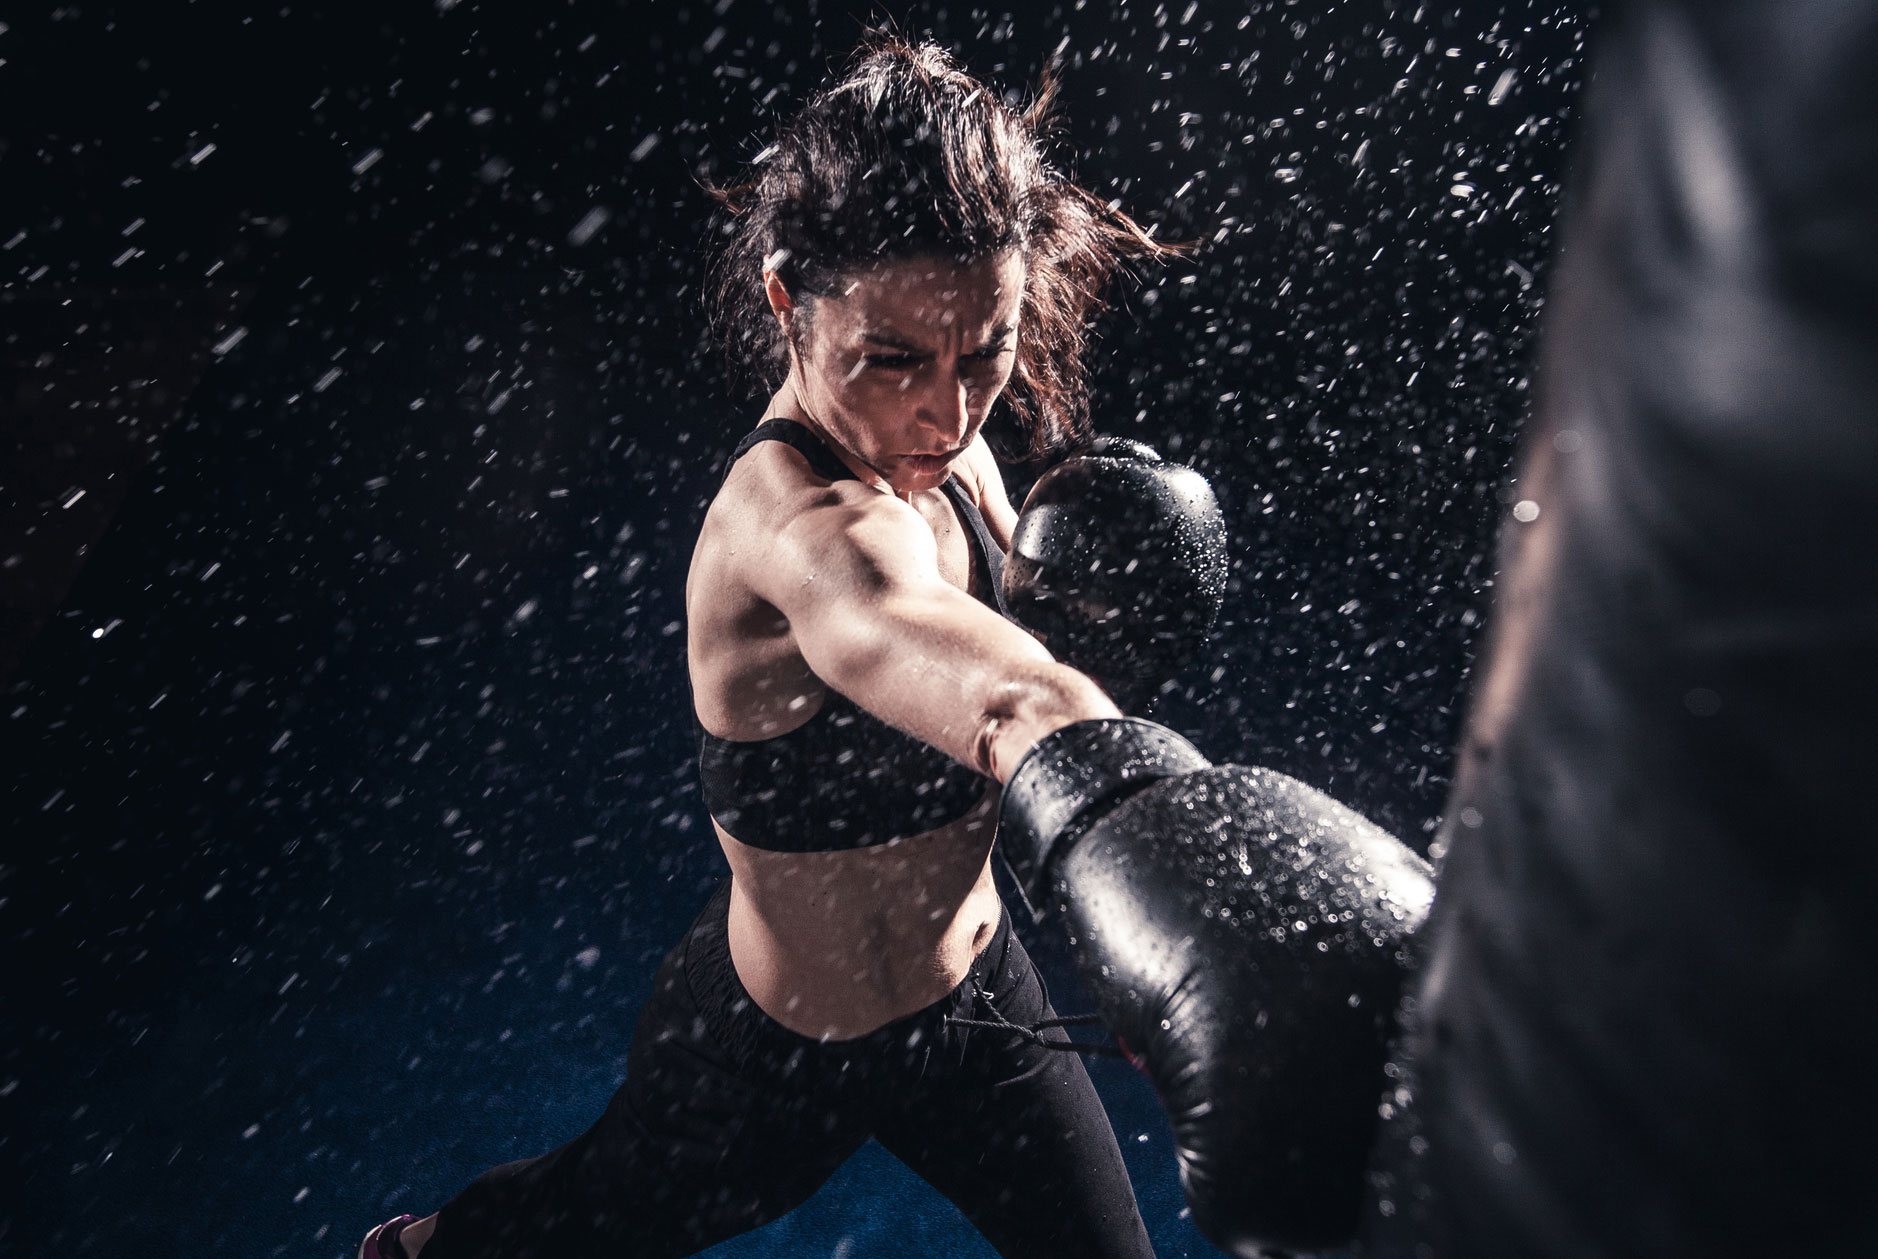 There's more to boxing shadows than warm-ups for your boxing workout.